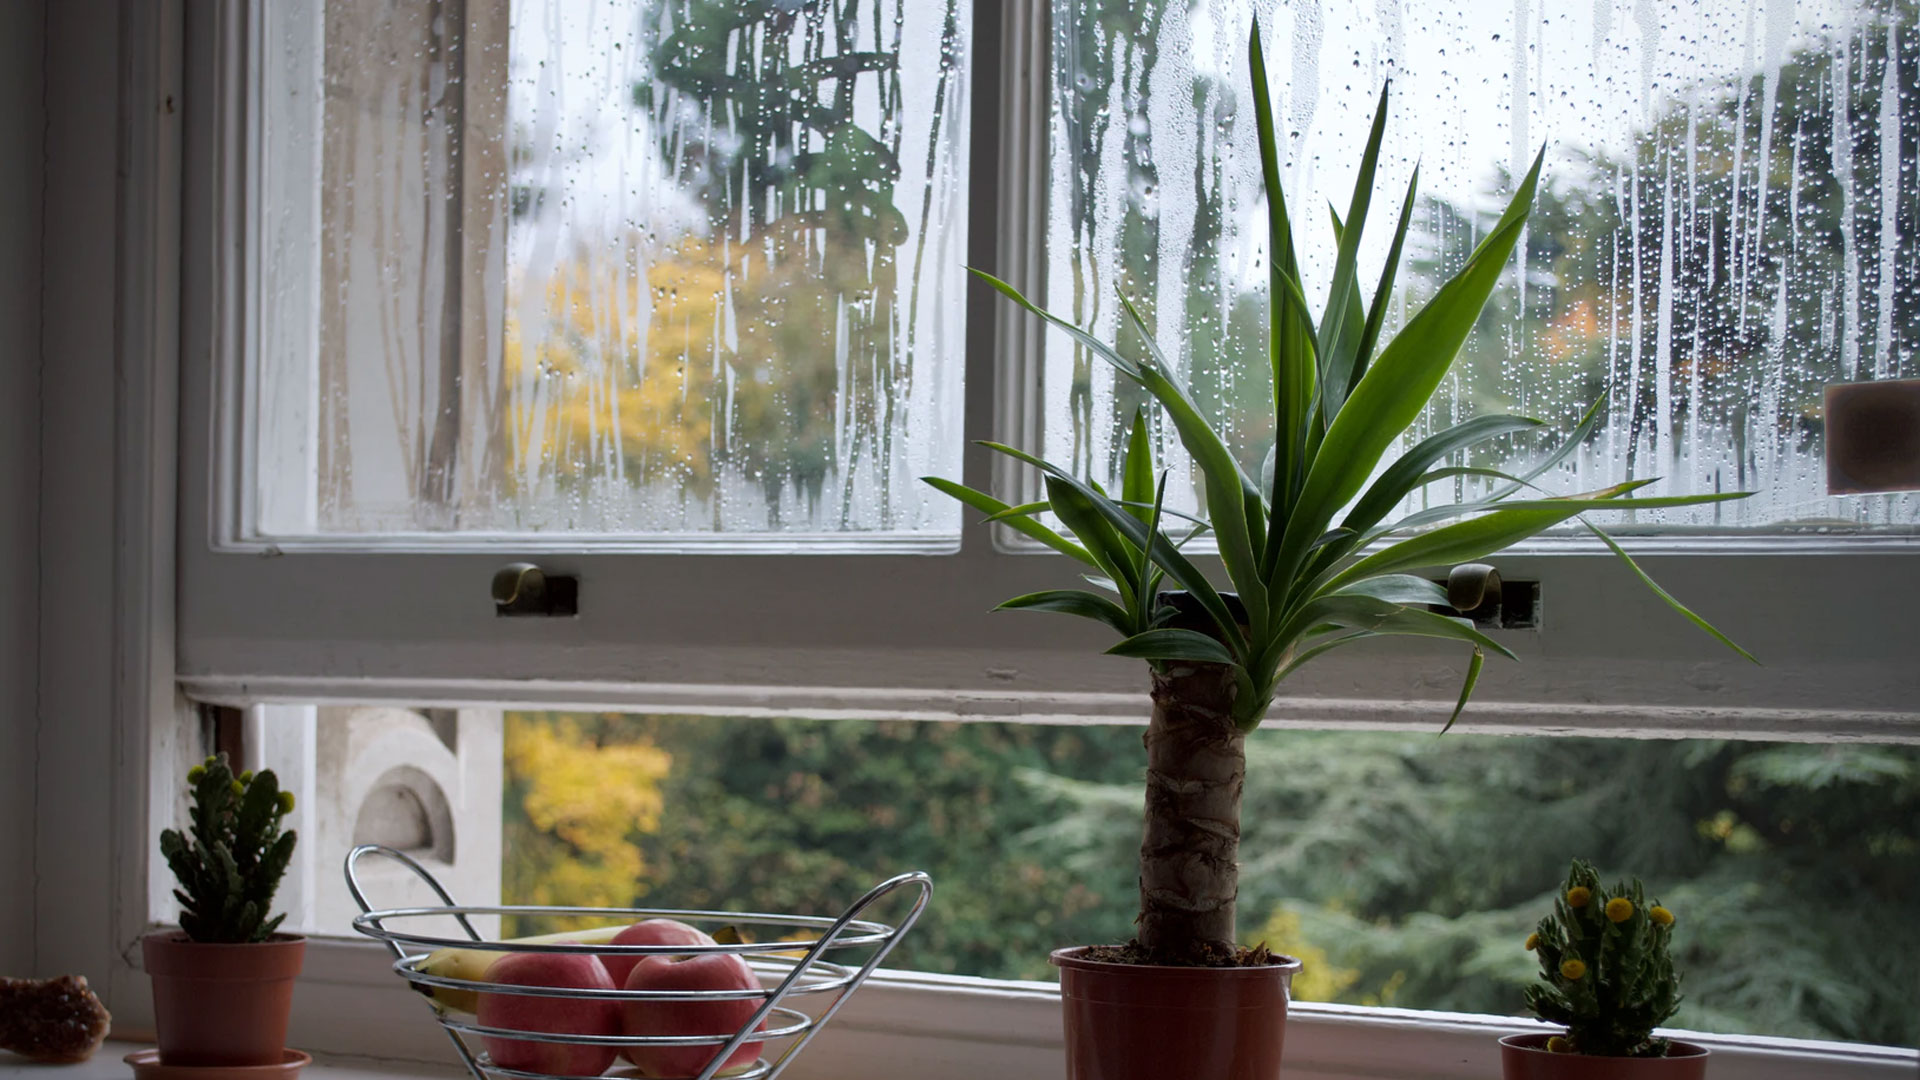 How to deal with condensation issues in the cold